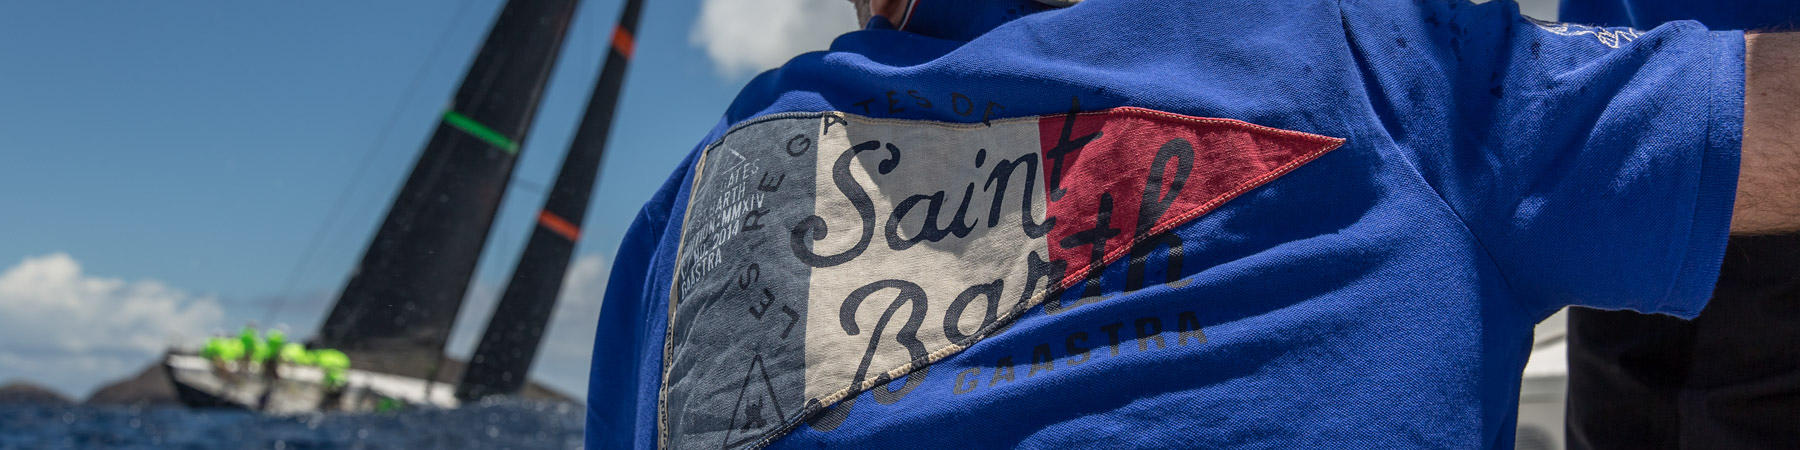 Les Voiles de Saint-Barth 2014 - Photo Plisson